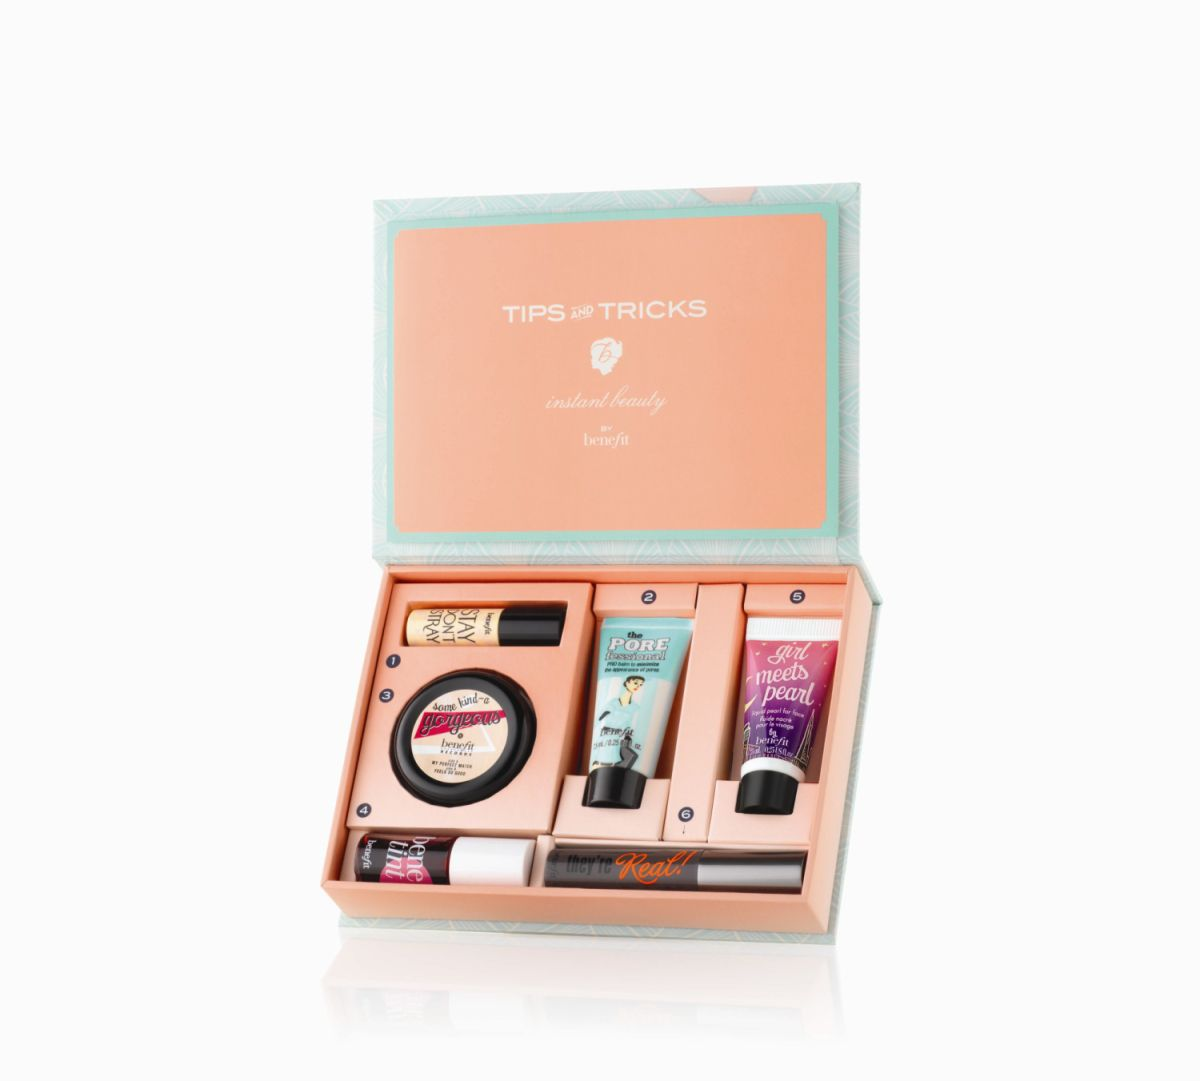 Primping with the Stars Makeup Kit